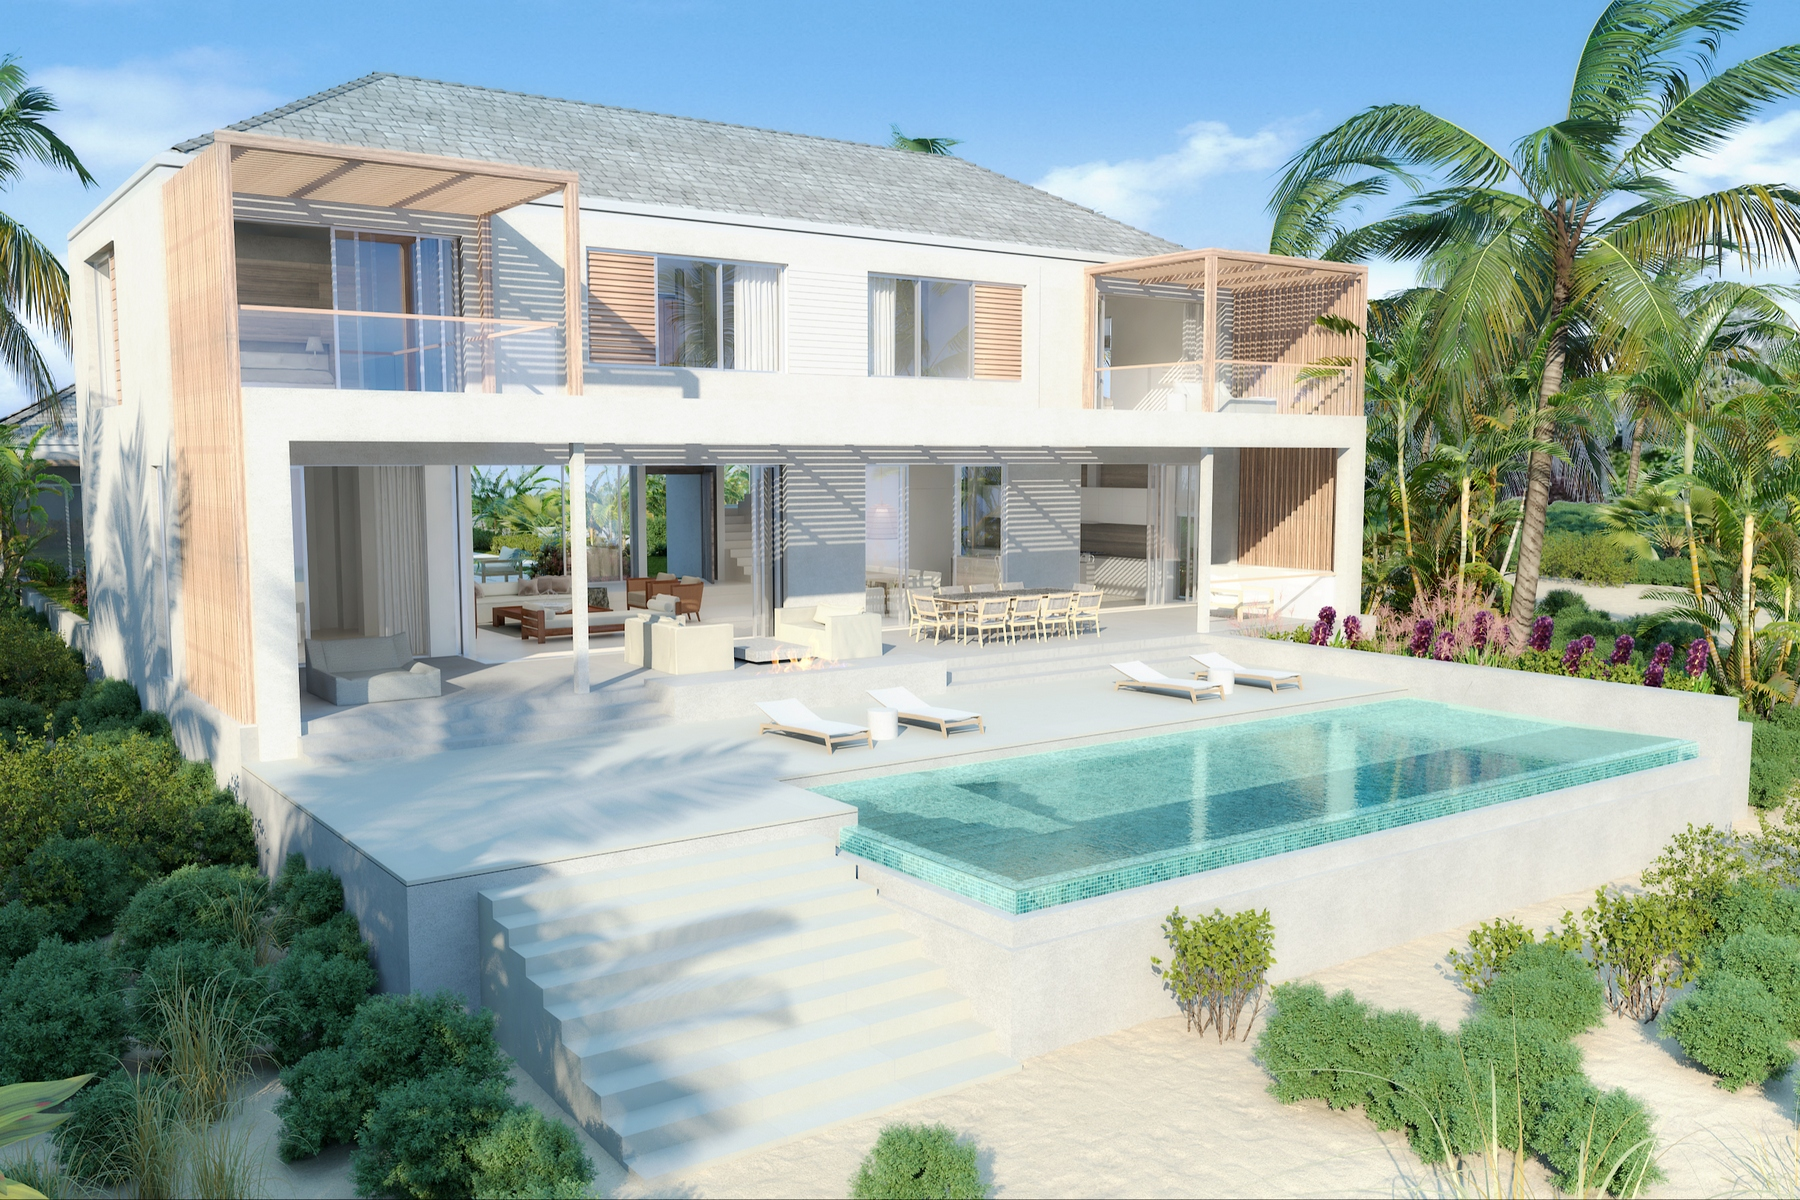 Single Family Home for Sale at BEACH ENCLAVE LONG BAY - Design Two Beachfront Long Bay, Providenciales, TCI Turks And Caicos Islands